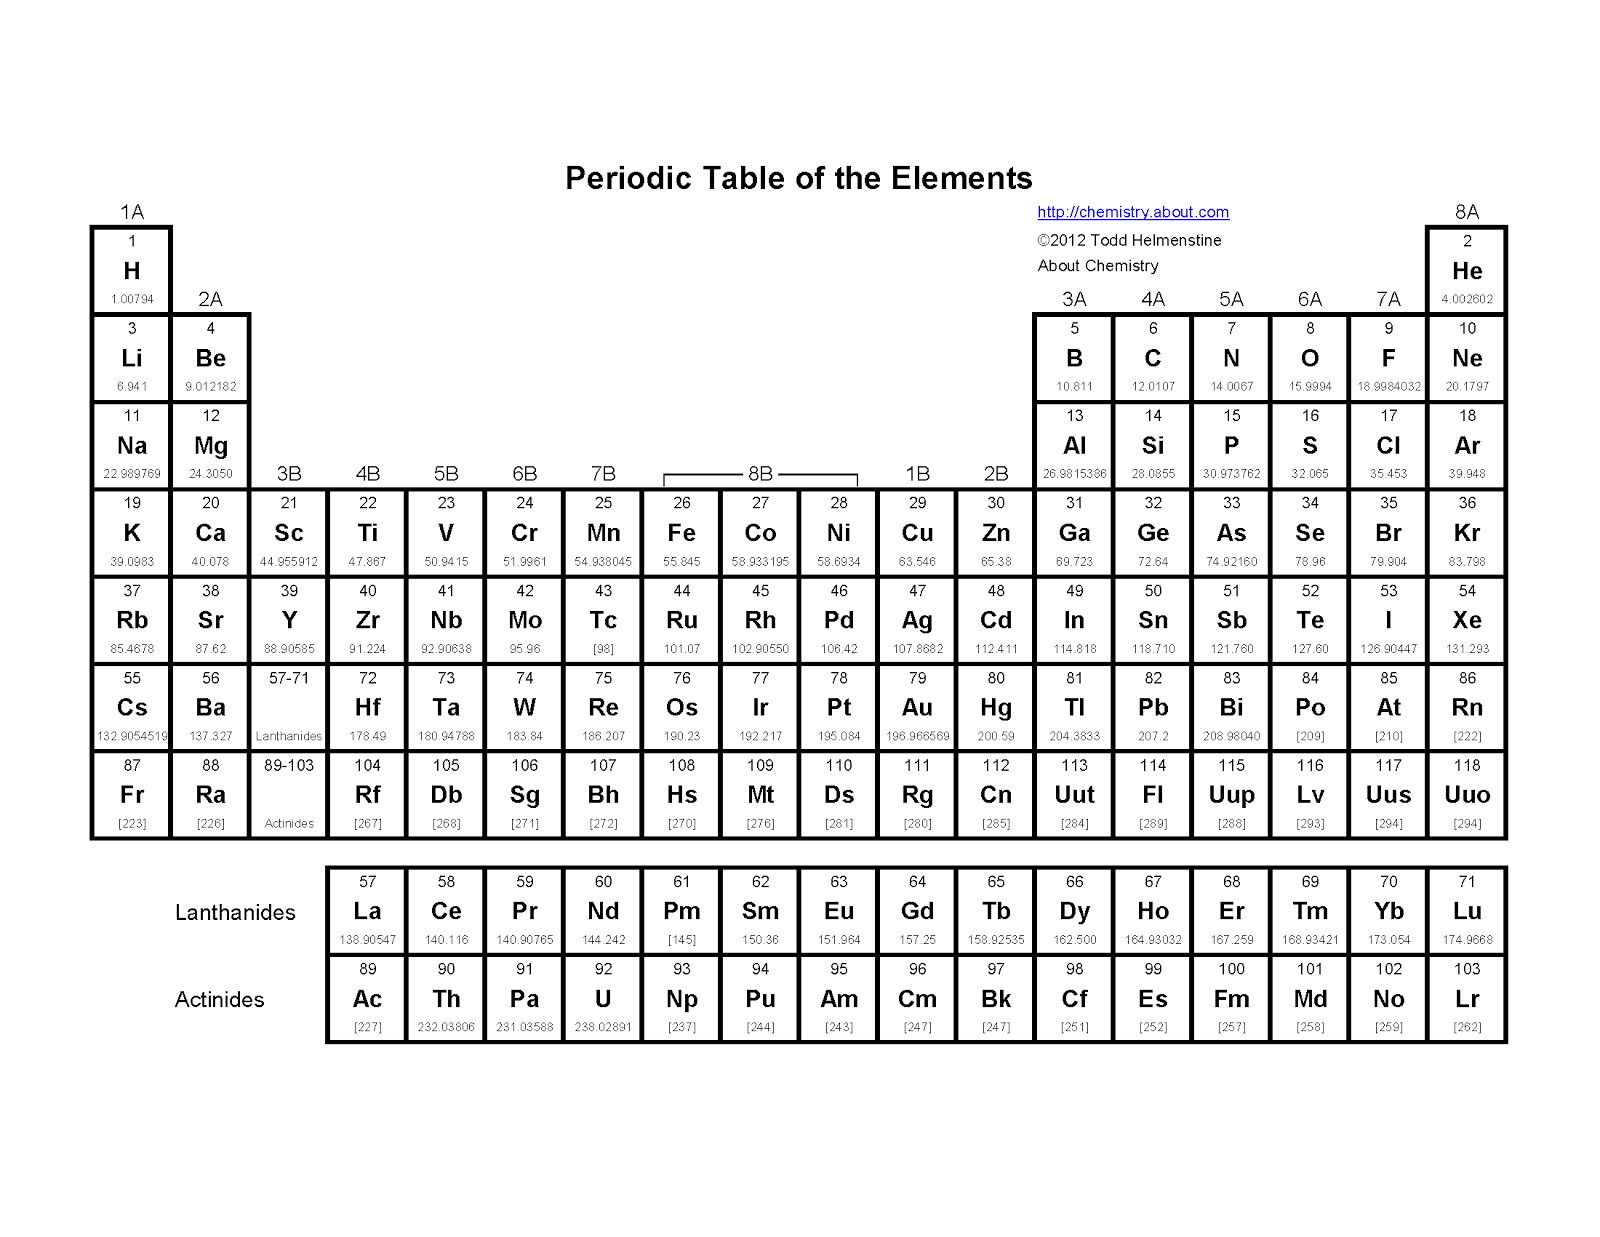 download hd wallpapers printable periodic table of elements with names and charges - Periodic Table With Charges Hd